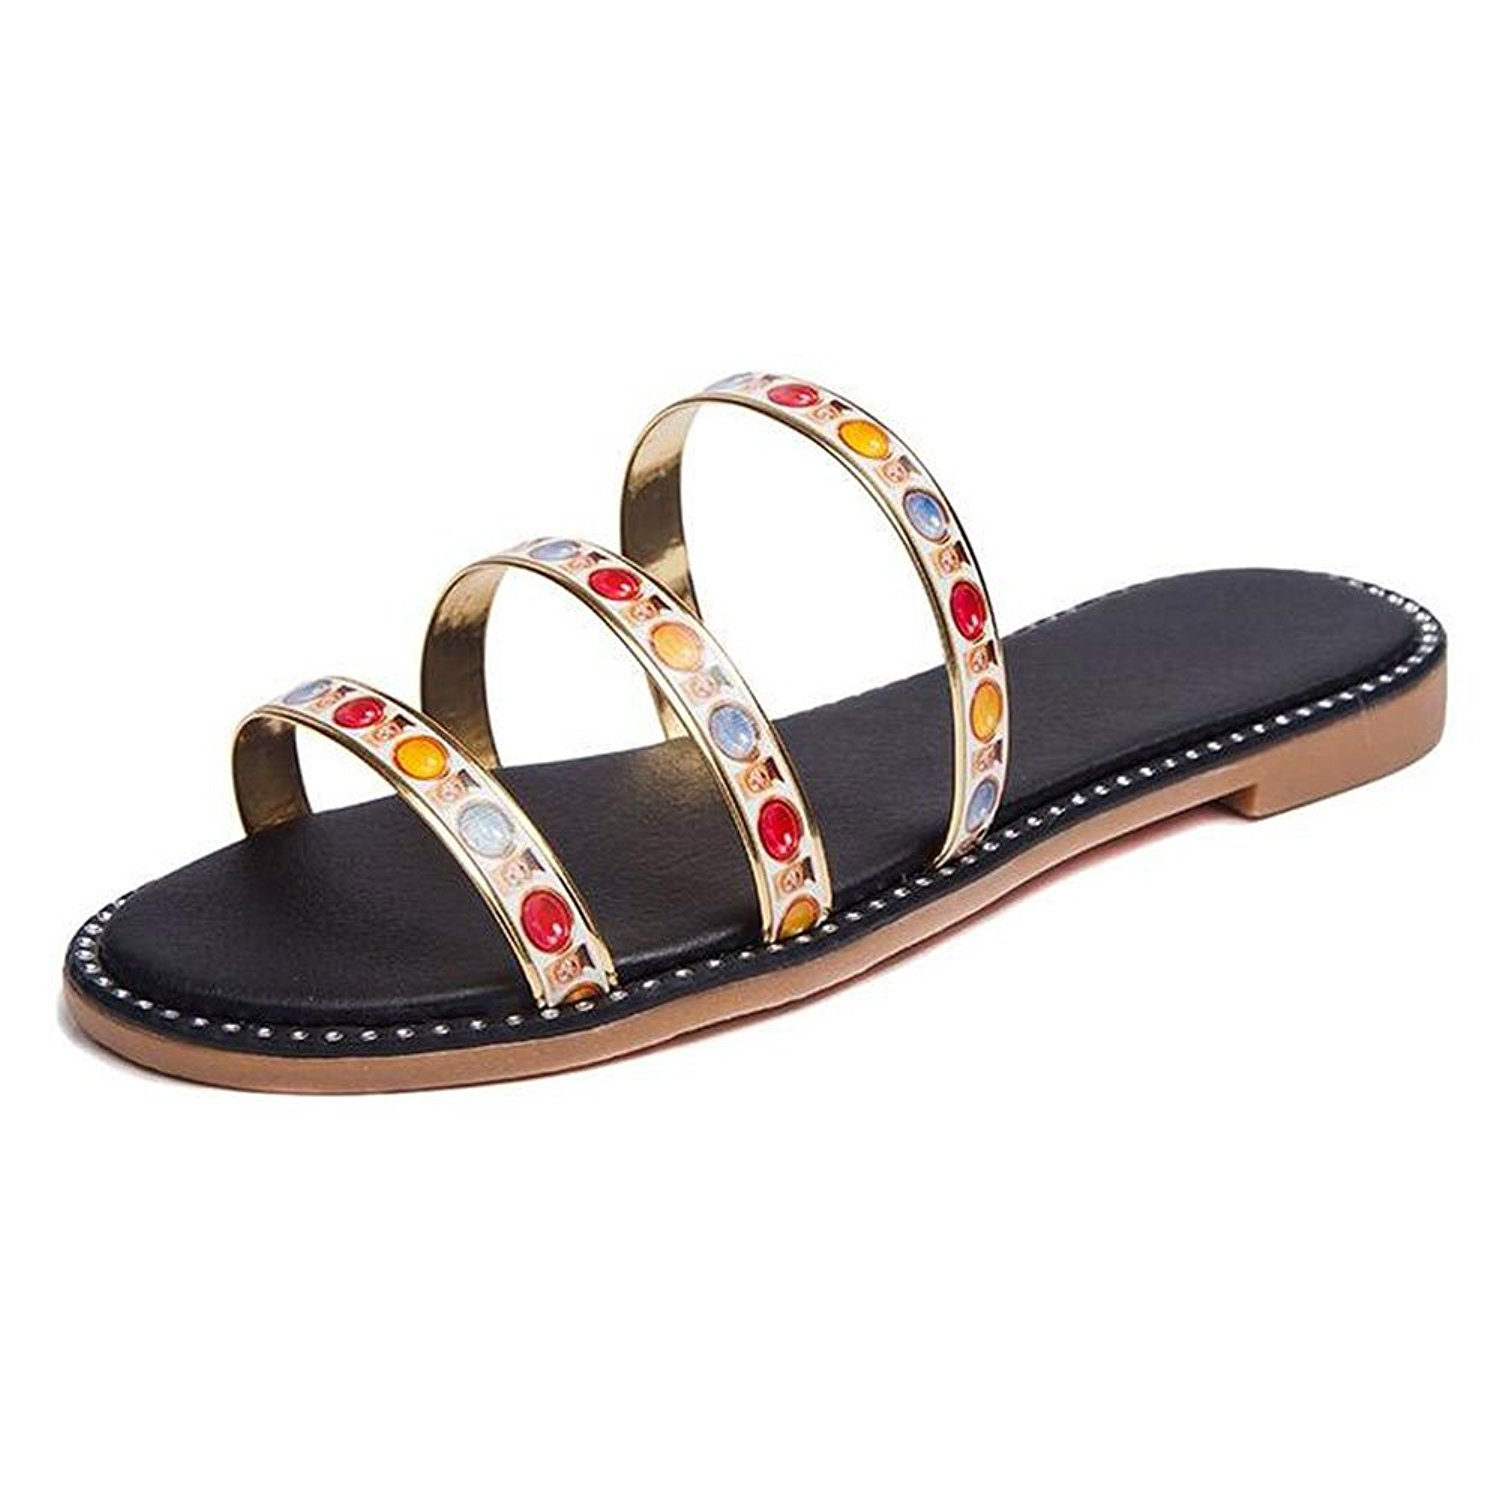 e9bcee070392 Get Quotations · Women Slide Sandals Glitter Flat Thong Sandals Fashion  Beach Flat Slippers Shoes Sliver Gold